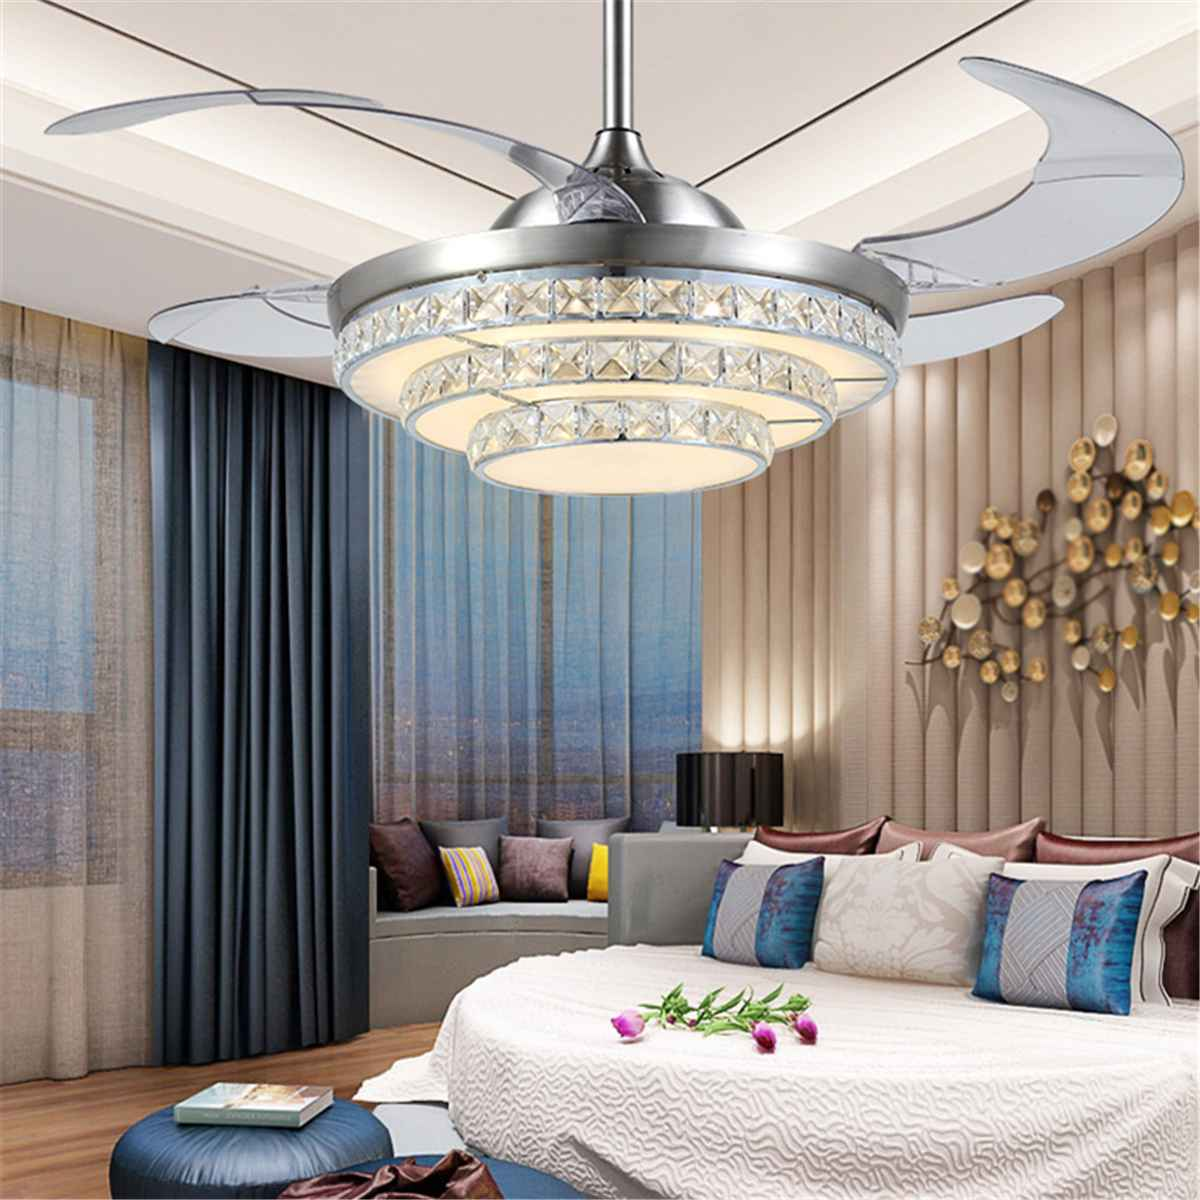 Discreet 42 Inch Invisiable Crystal Ceiling Fan Light Modern Luxury Dining Room Ceiling Fan Lamp 4 Fan Blade Remote Control Ventilador Preventing Hairs From Graying And Helpful To Retain Complexion